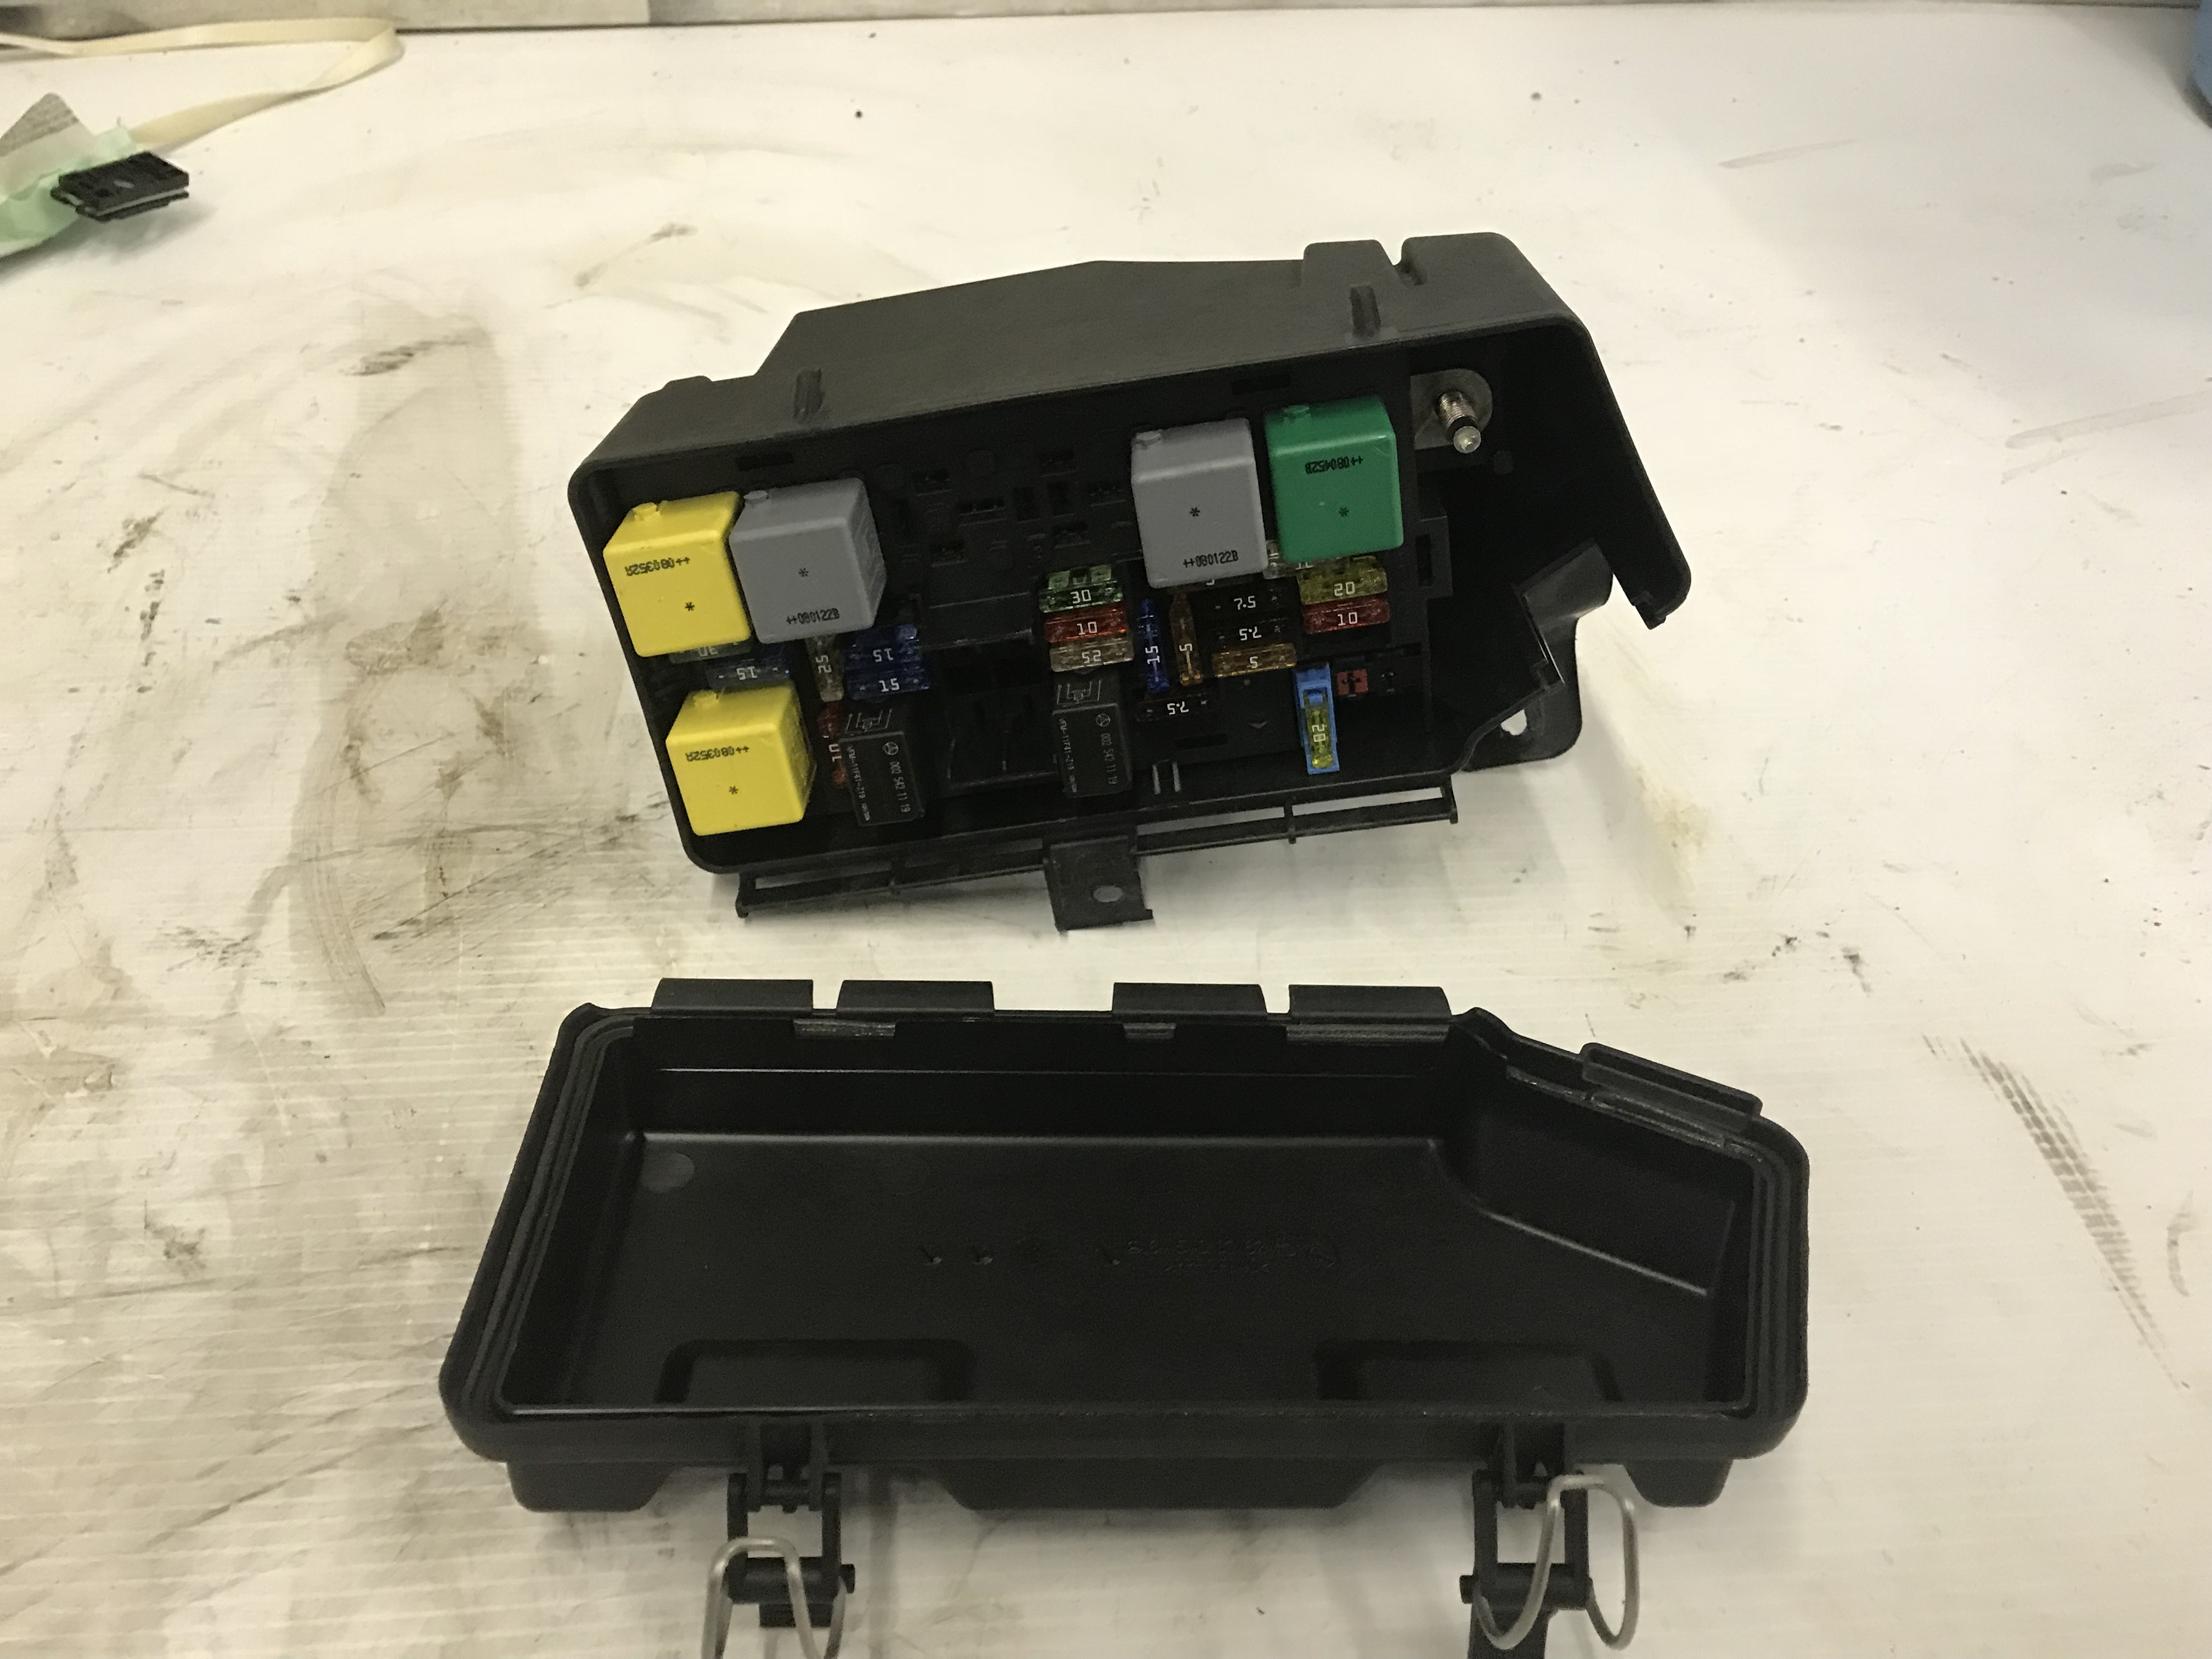 2008 Mercedes Ml320 30l V6 Diesel Fuse Box Engine Relay A164 540 07 2000 Shipping Information